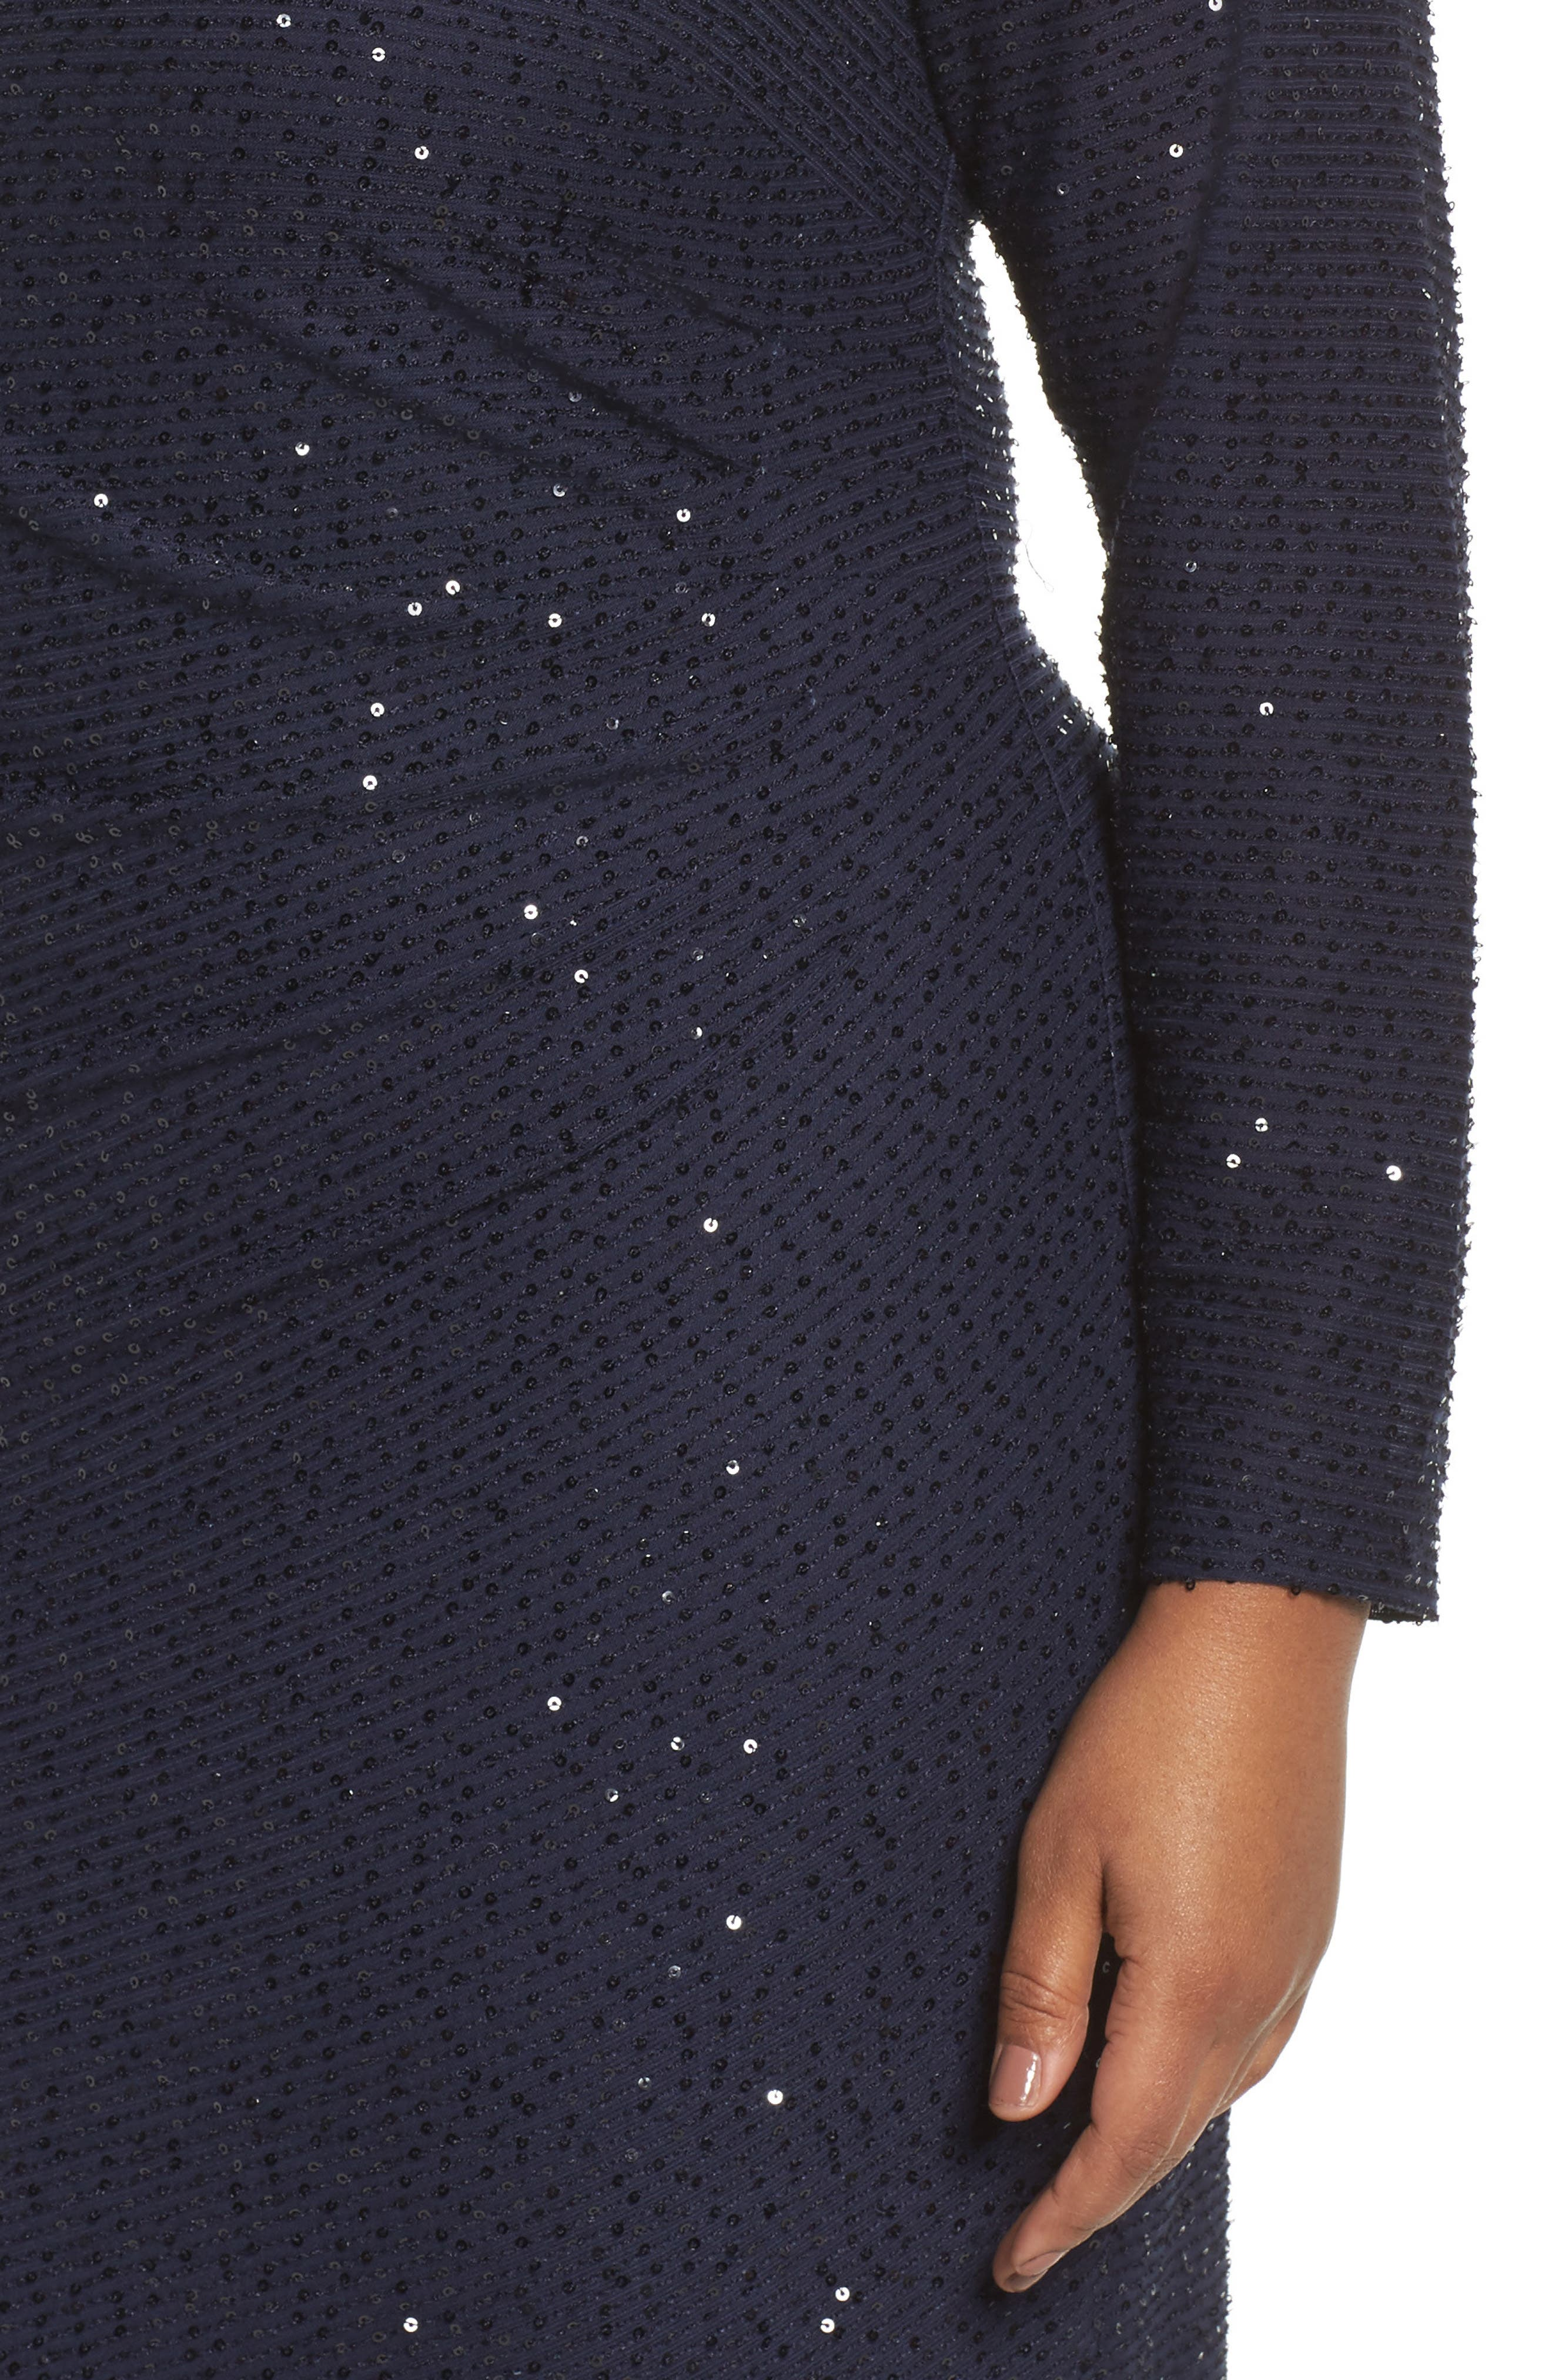 Sequin Knit Long Sleeve Dress,                             Alternate thumbnail 4, color,                             Navy